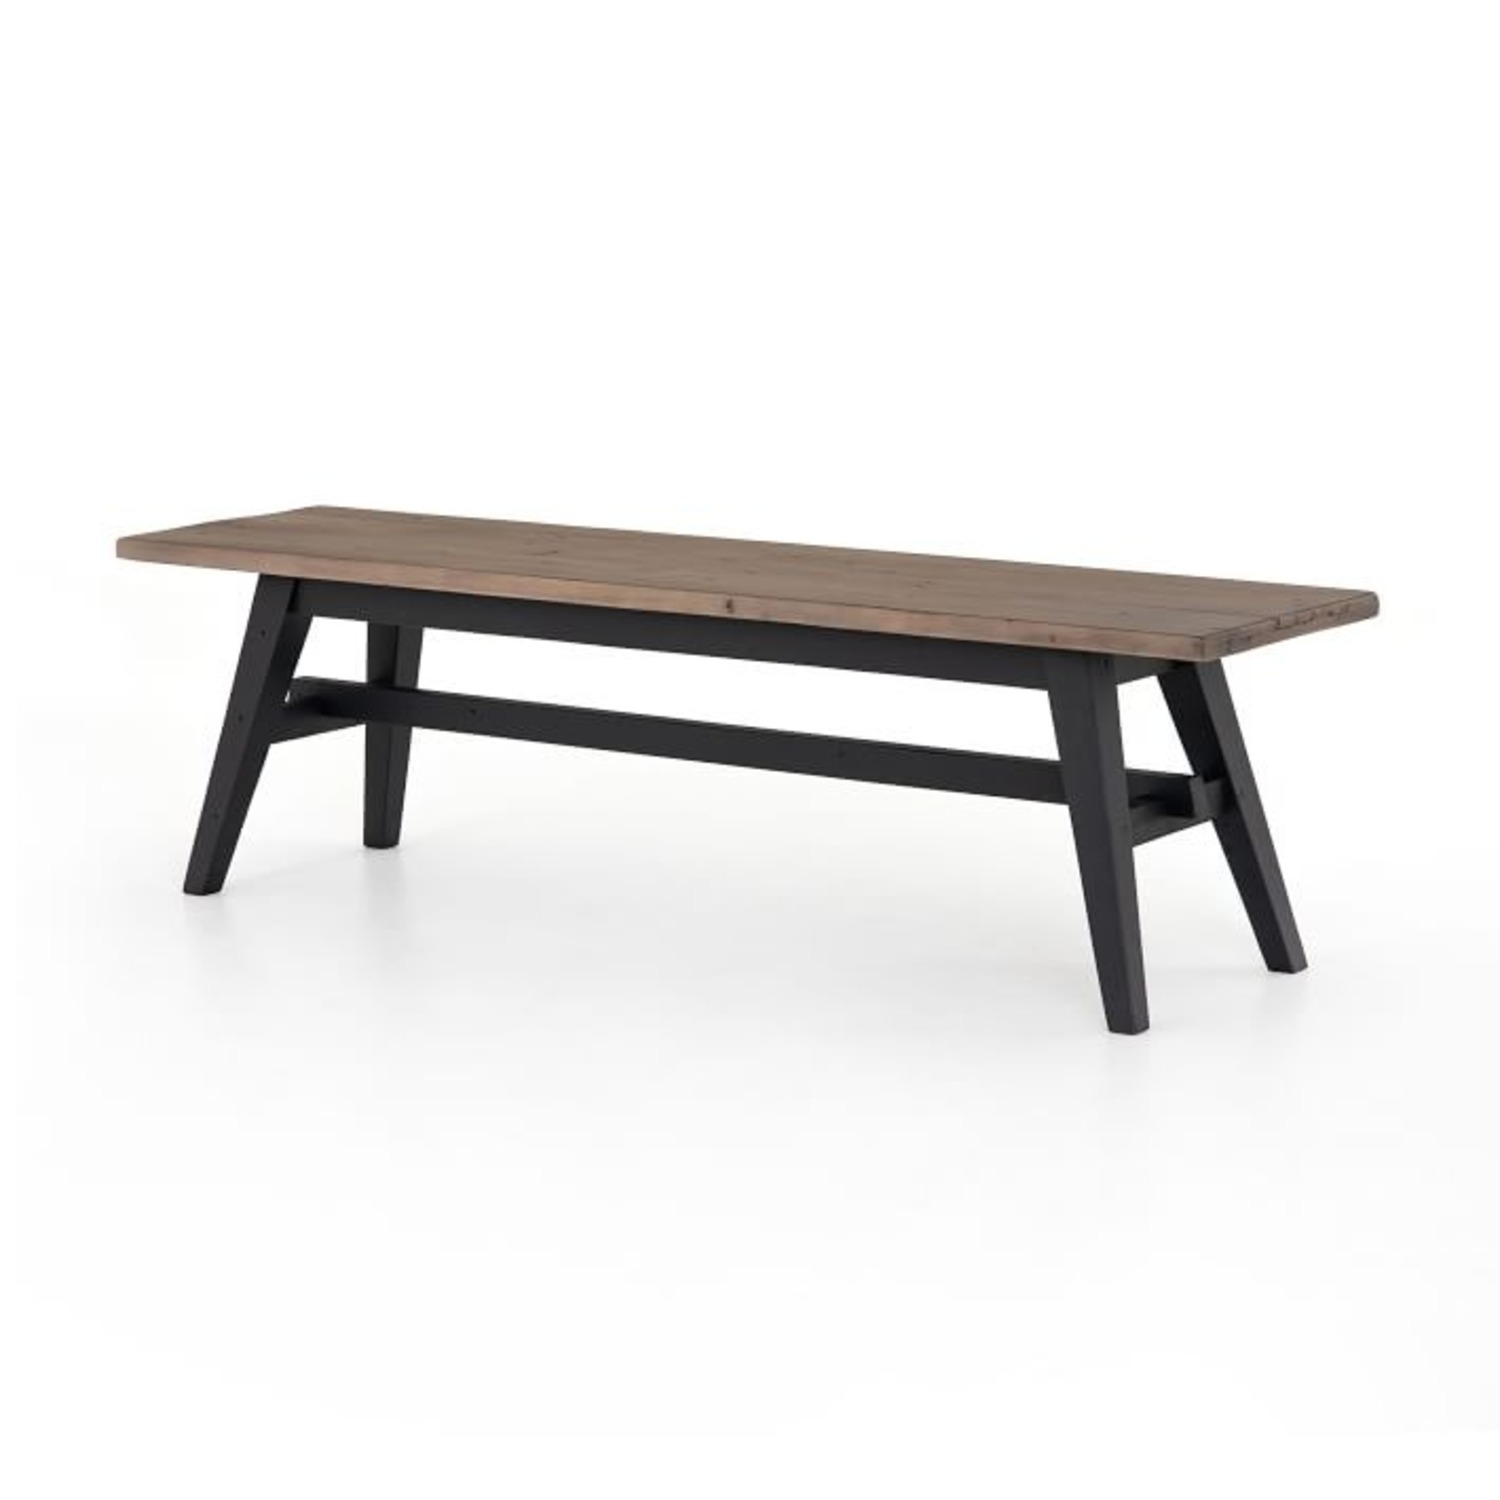 West Elm Reclaimed Pine & Iron Dining Bench - image-1